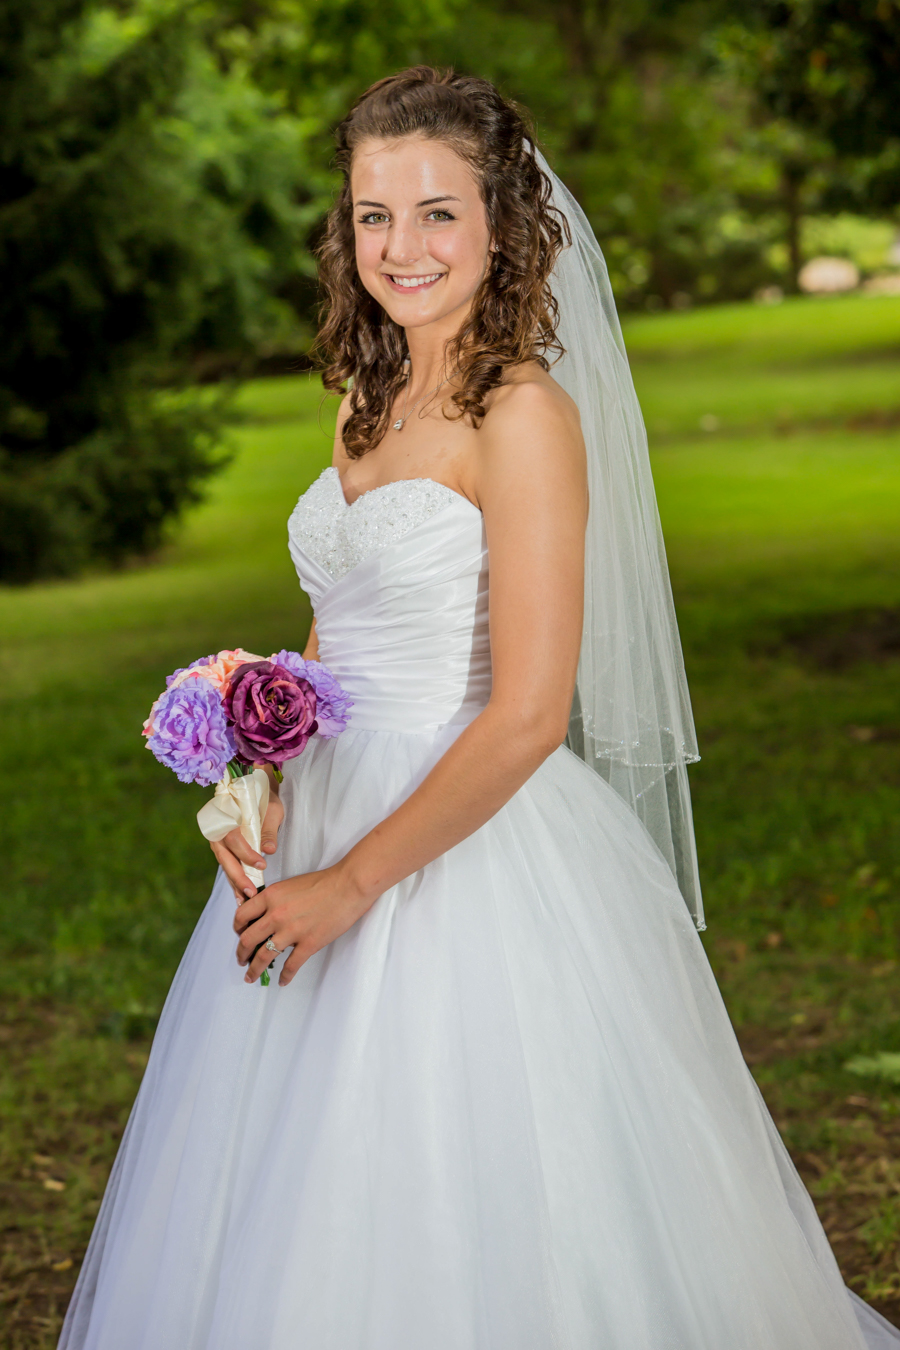 Stillwater-wedding-photographer-3.jpg